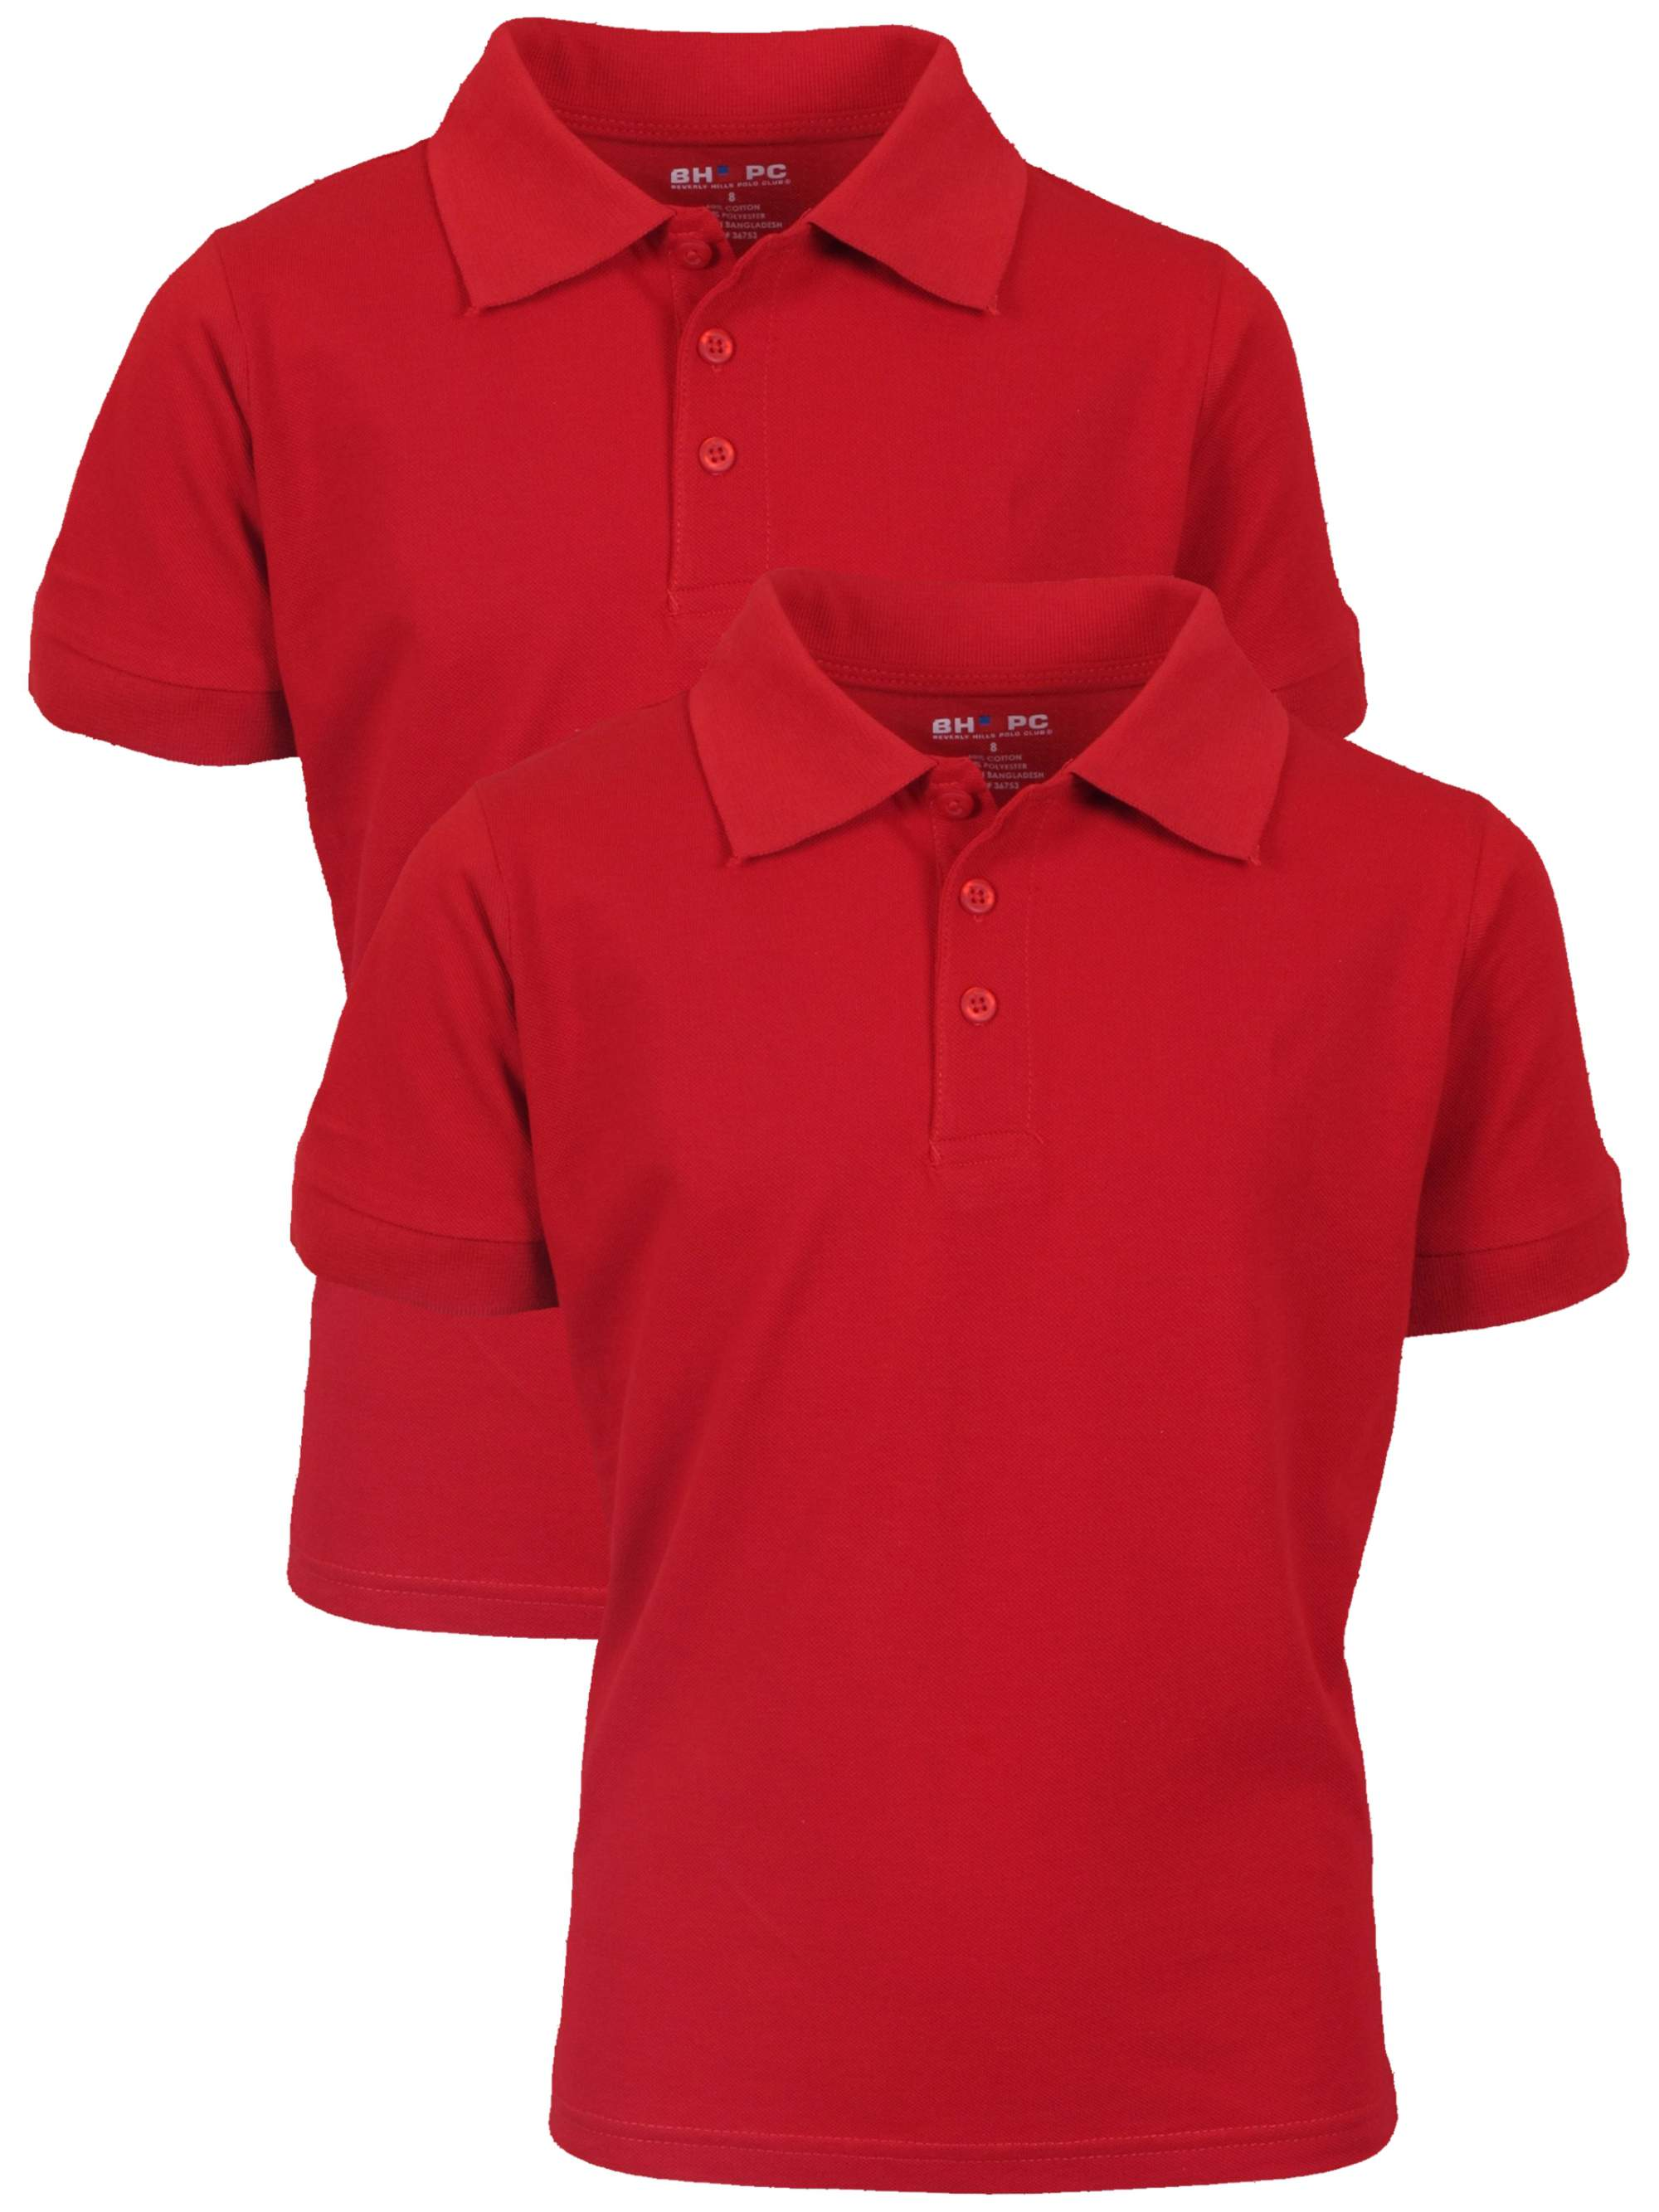 Boy's Uniform Short Sleeve Cotton Jersey Polo, 2 pack